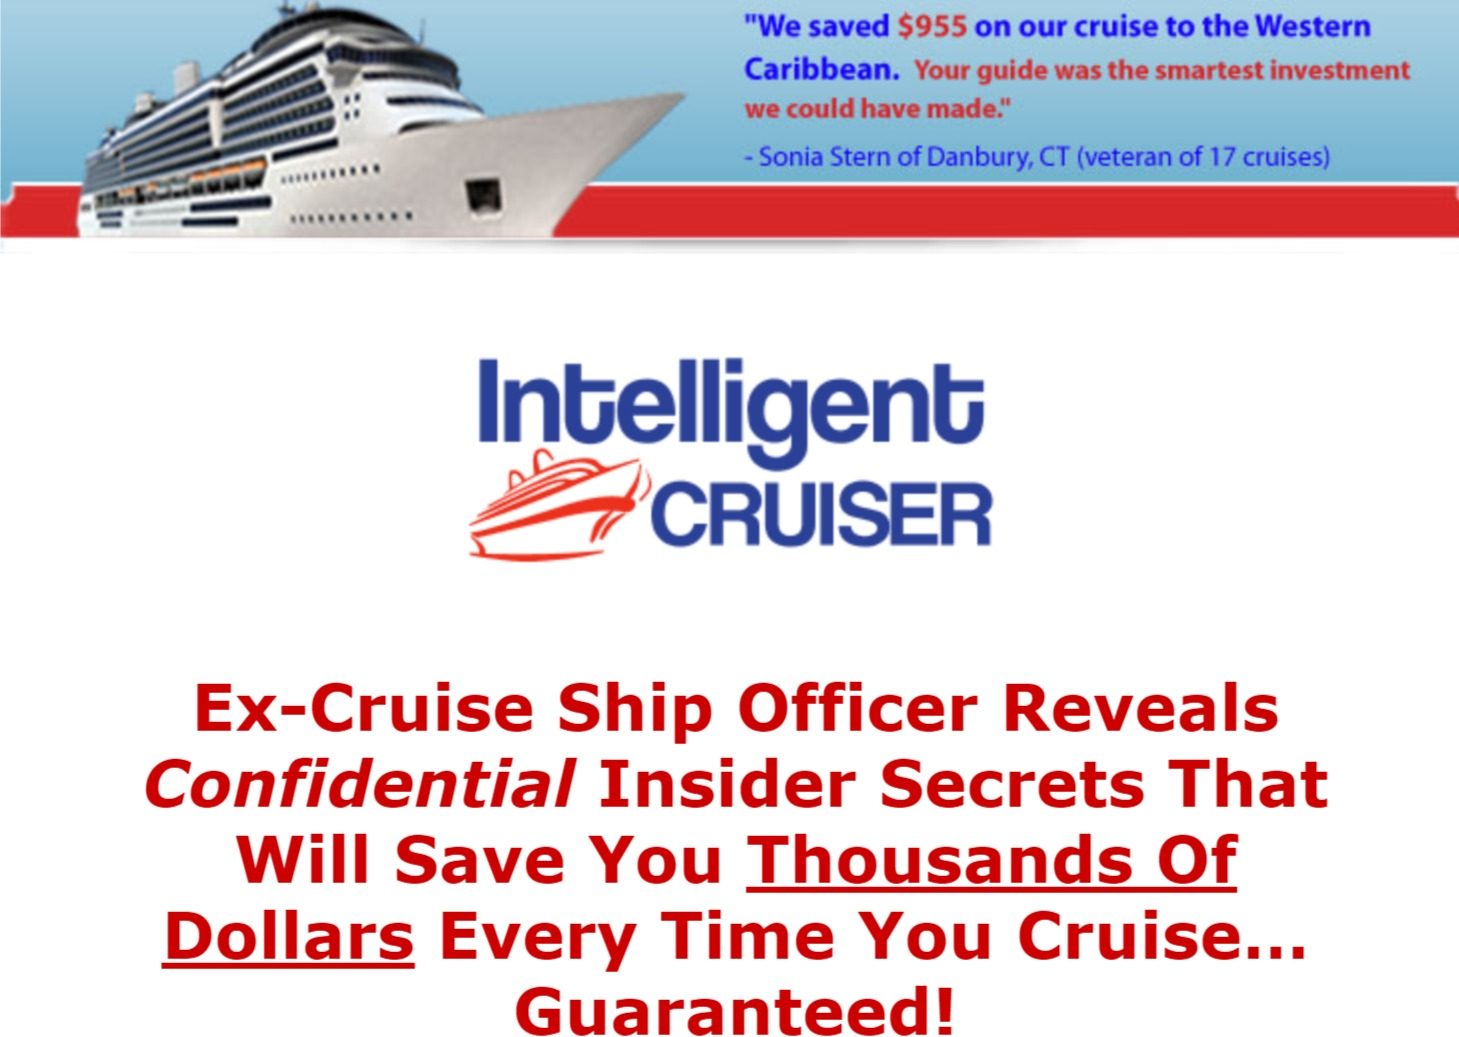 Ex-cruise Ship Officer Reveals Insider Secrets Of The Cruise Industry